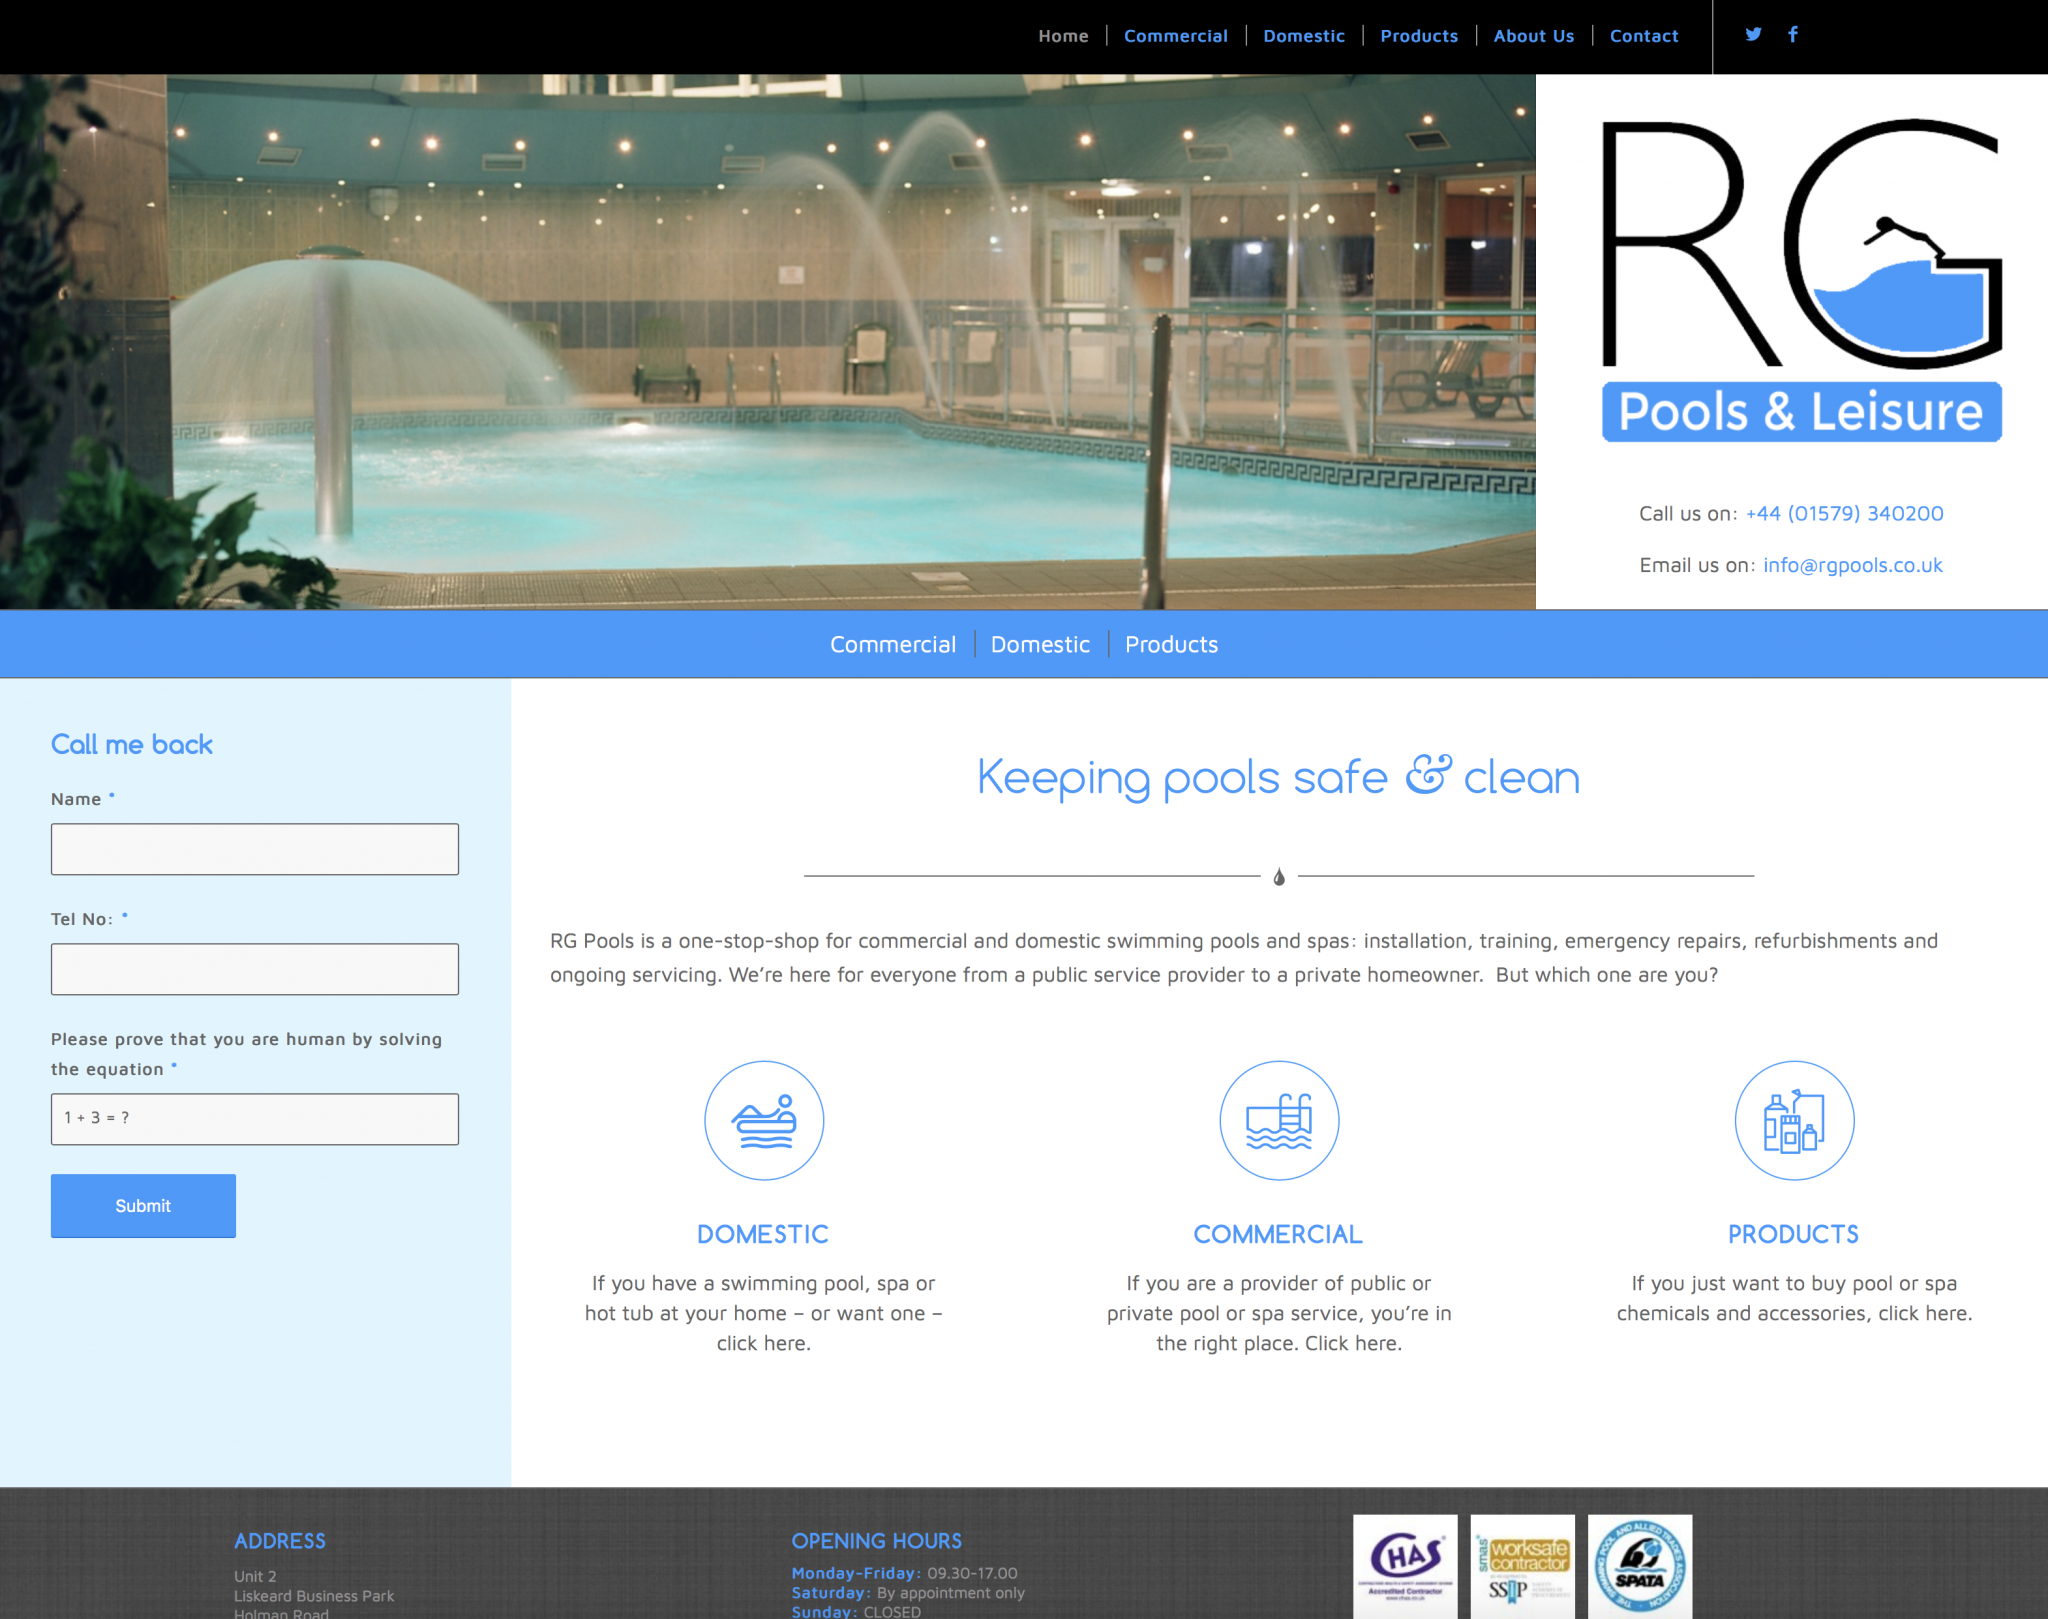 RG Pools & Leisure Ltd | website design by Awenek